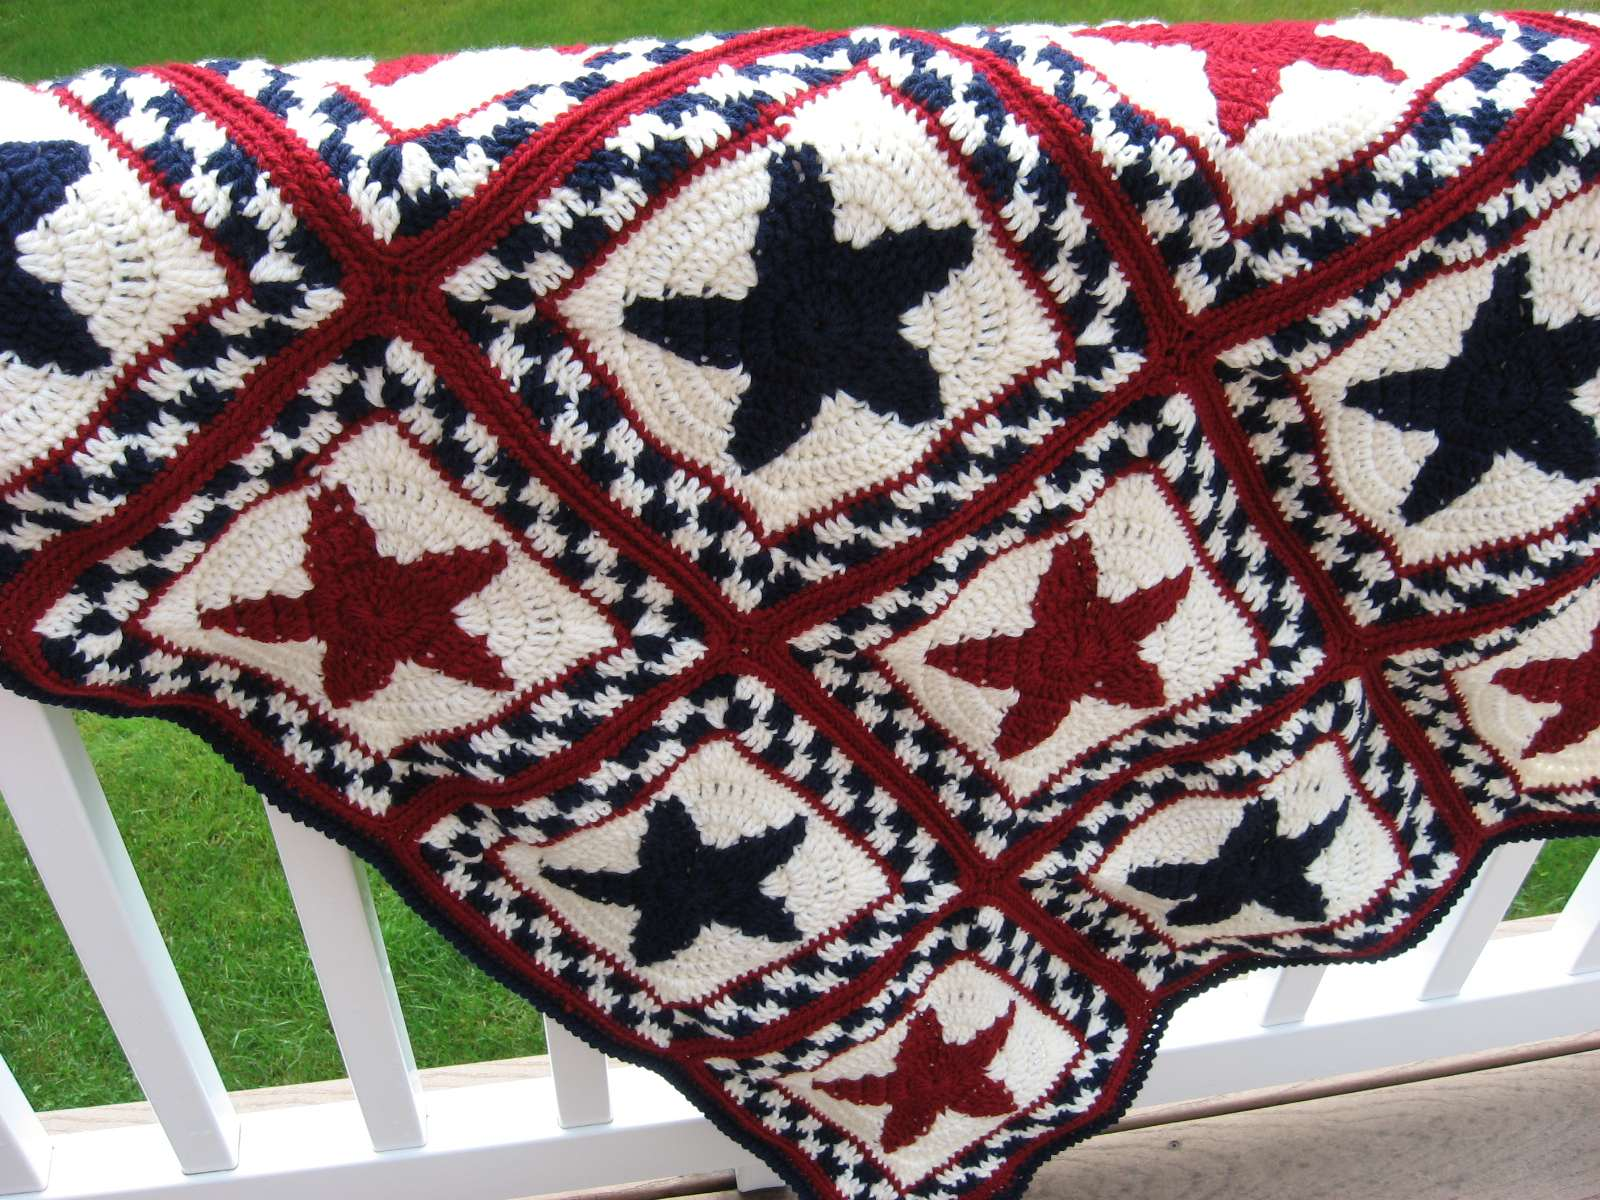 Hooked on Needles: Happy July 4th!